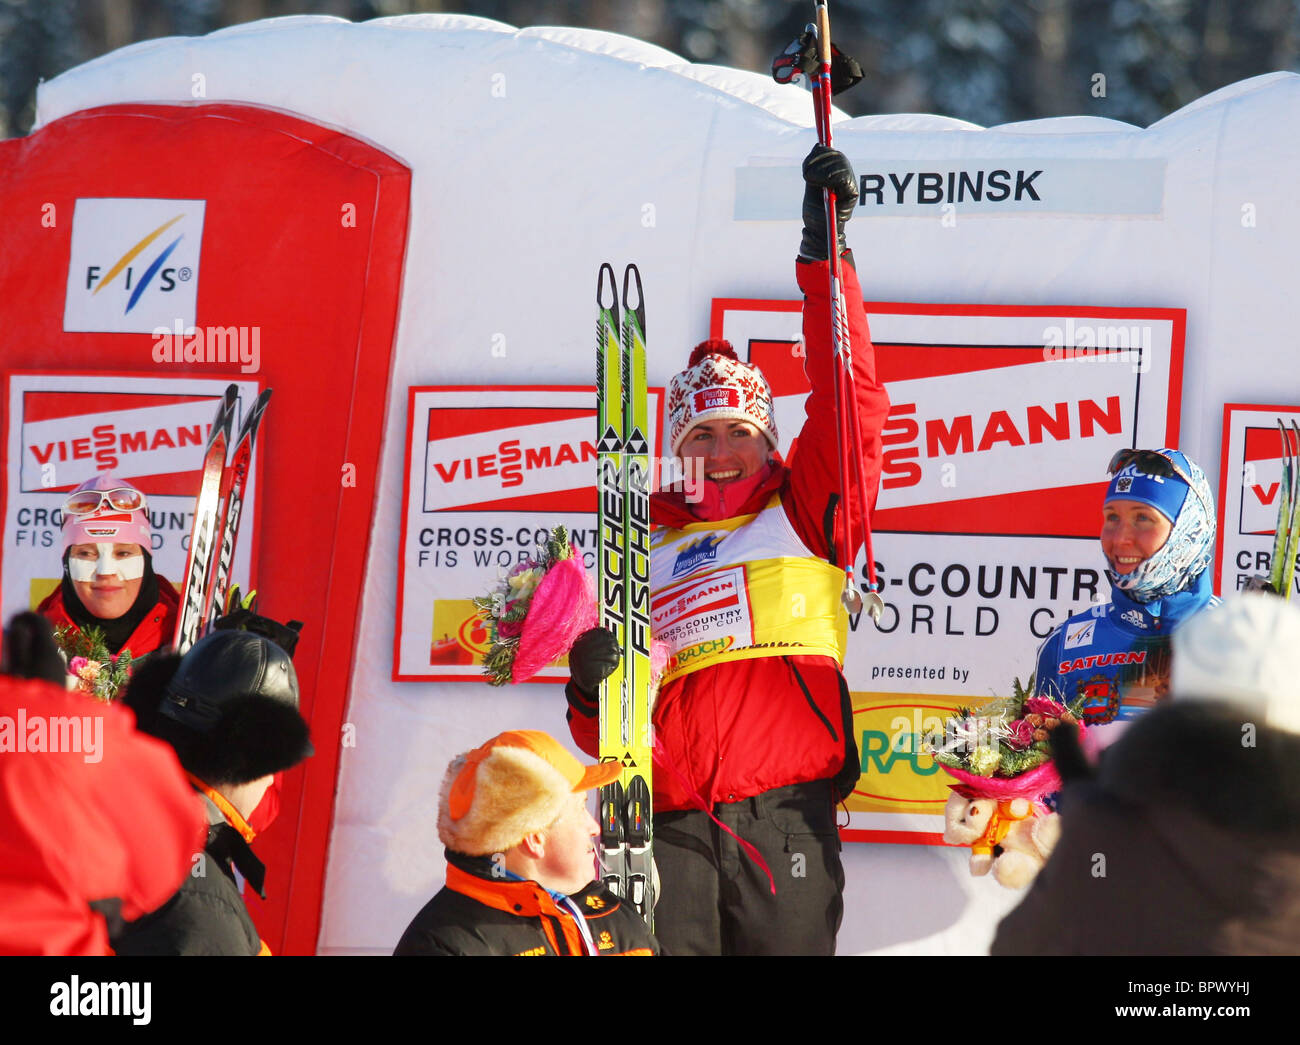 Russia hosts FIS World Cup event - Stock Image